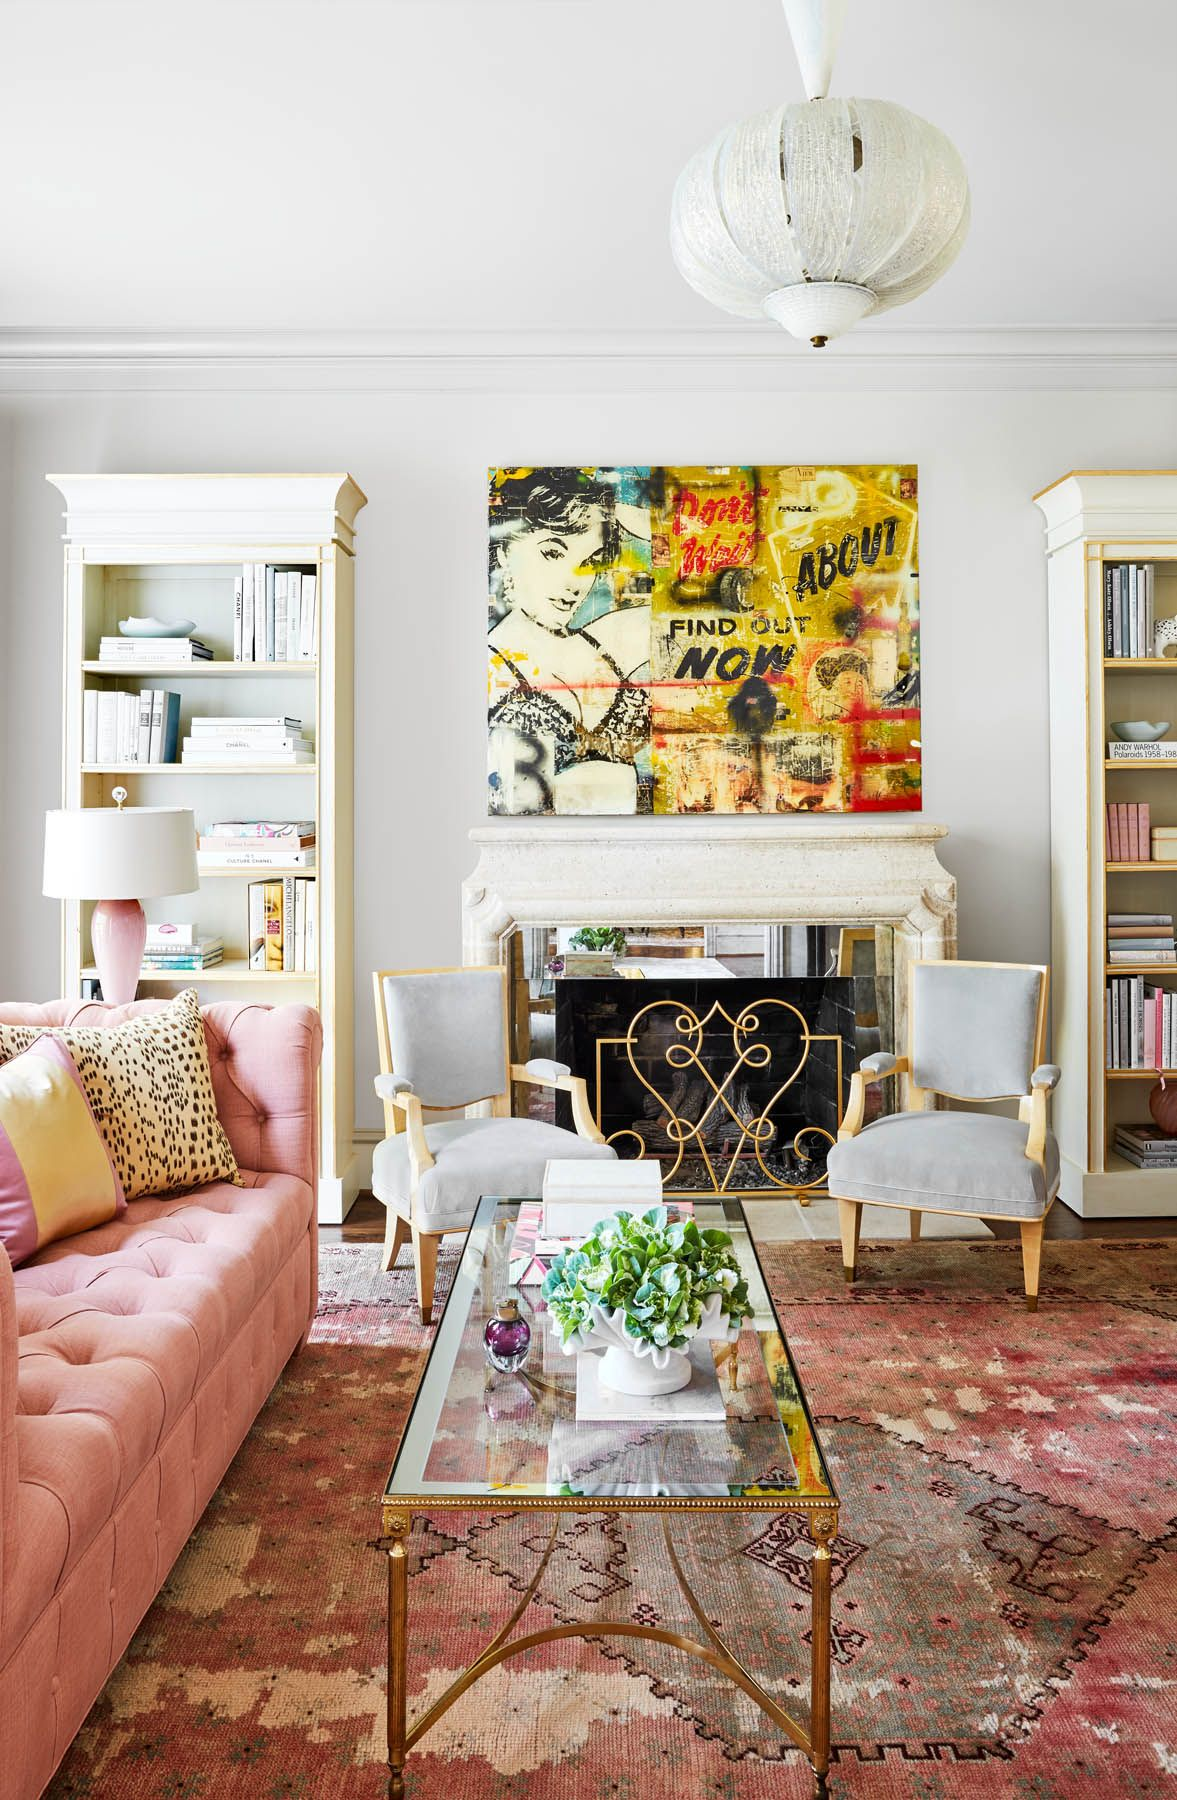 A Transformed Former Bachelor Pad In Dallas | D Magazine